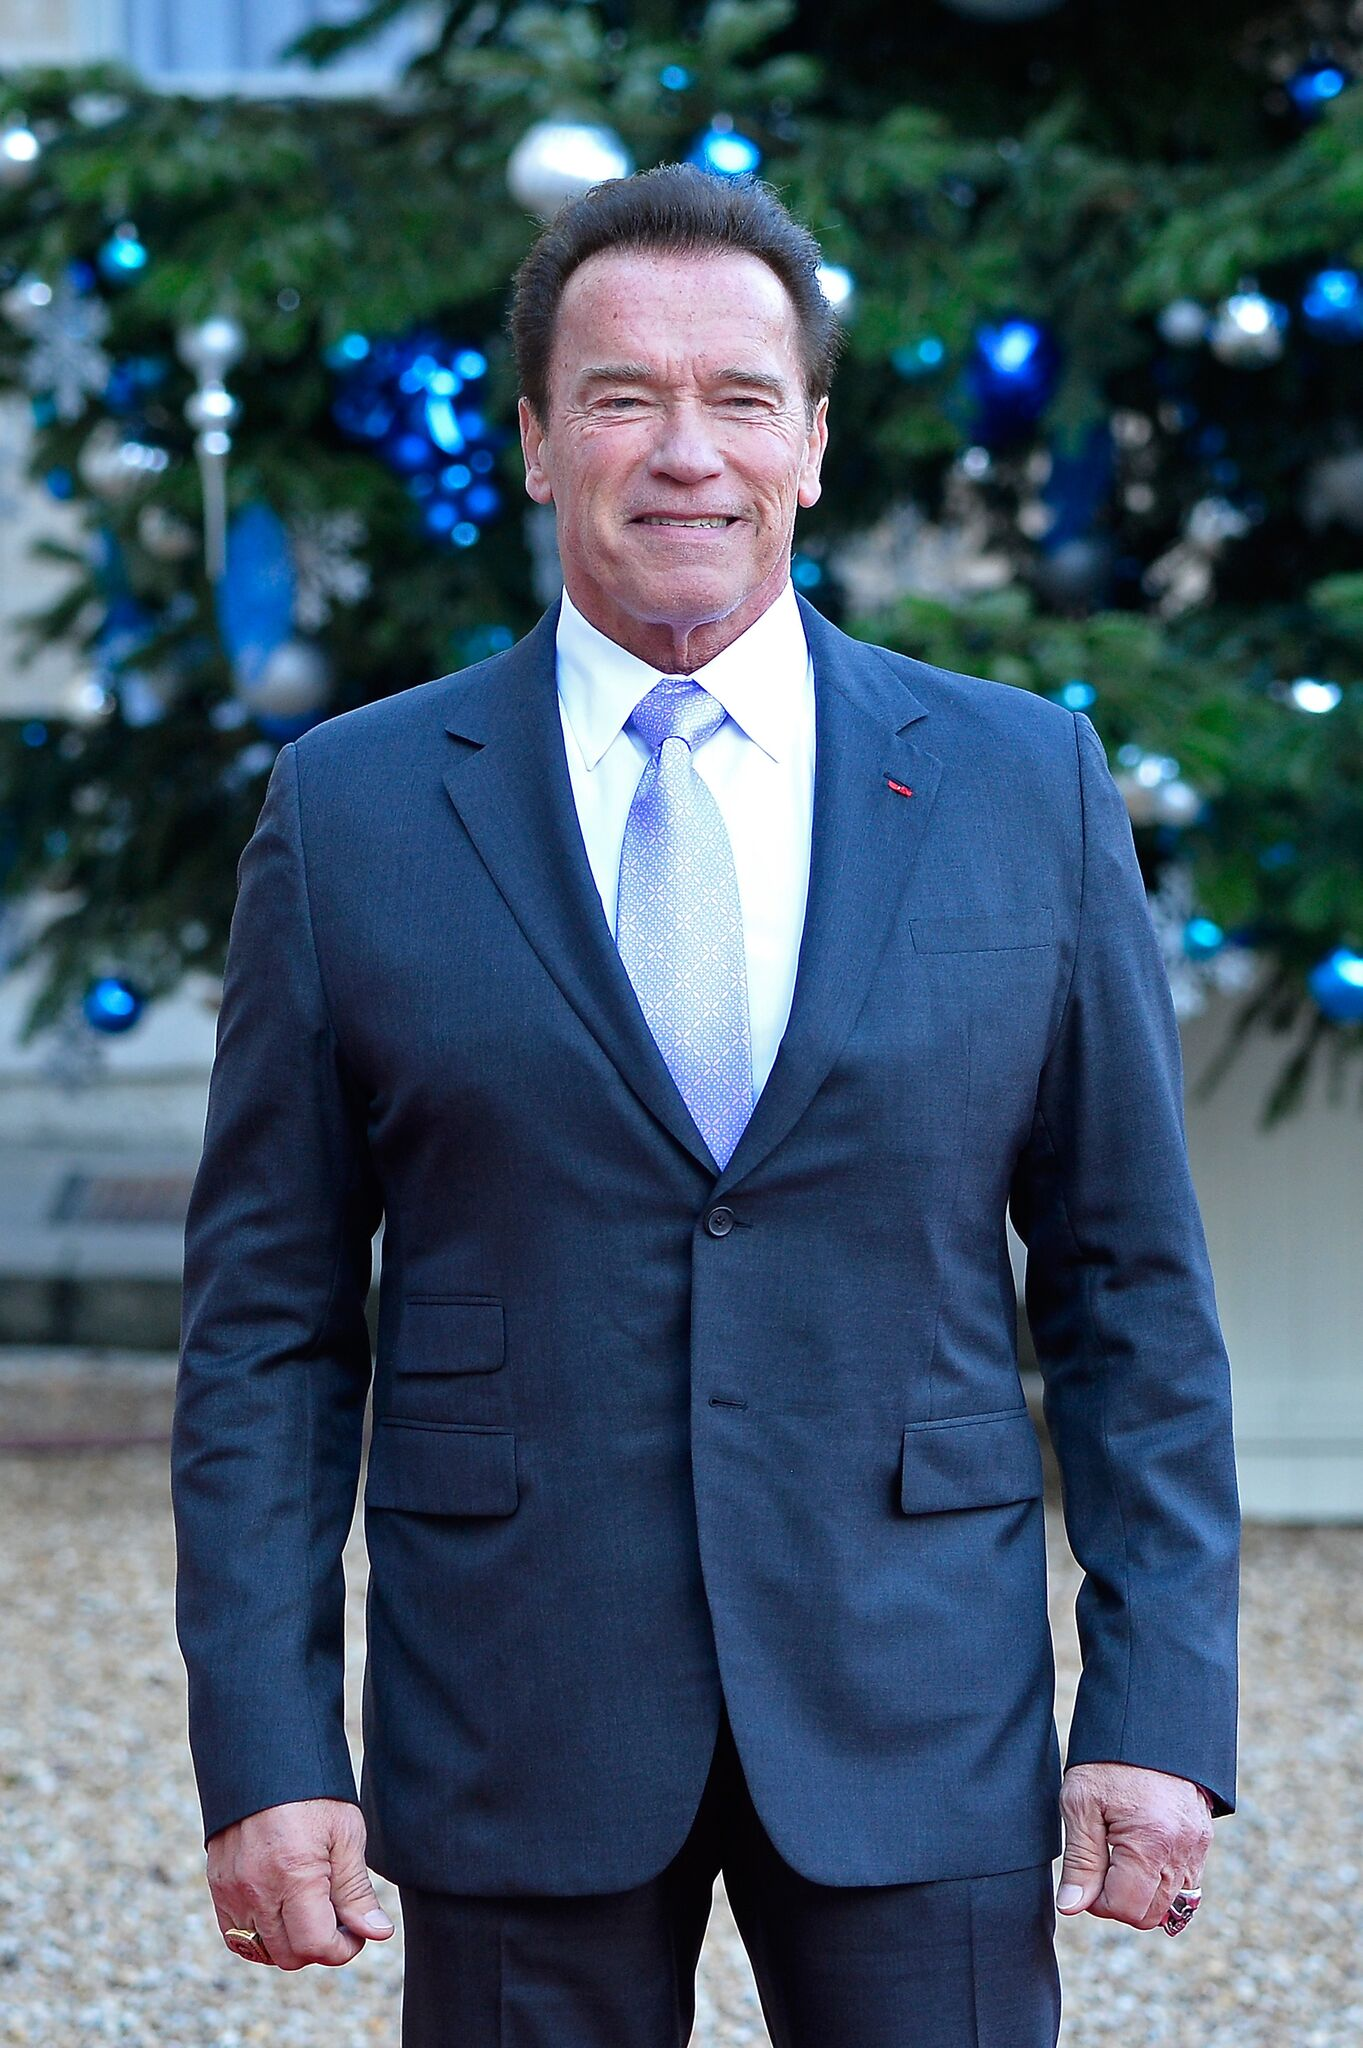 Arnold Schwarzenegger arrives for a meeting with French President Emmanuel Macron | Getty Images